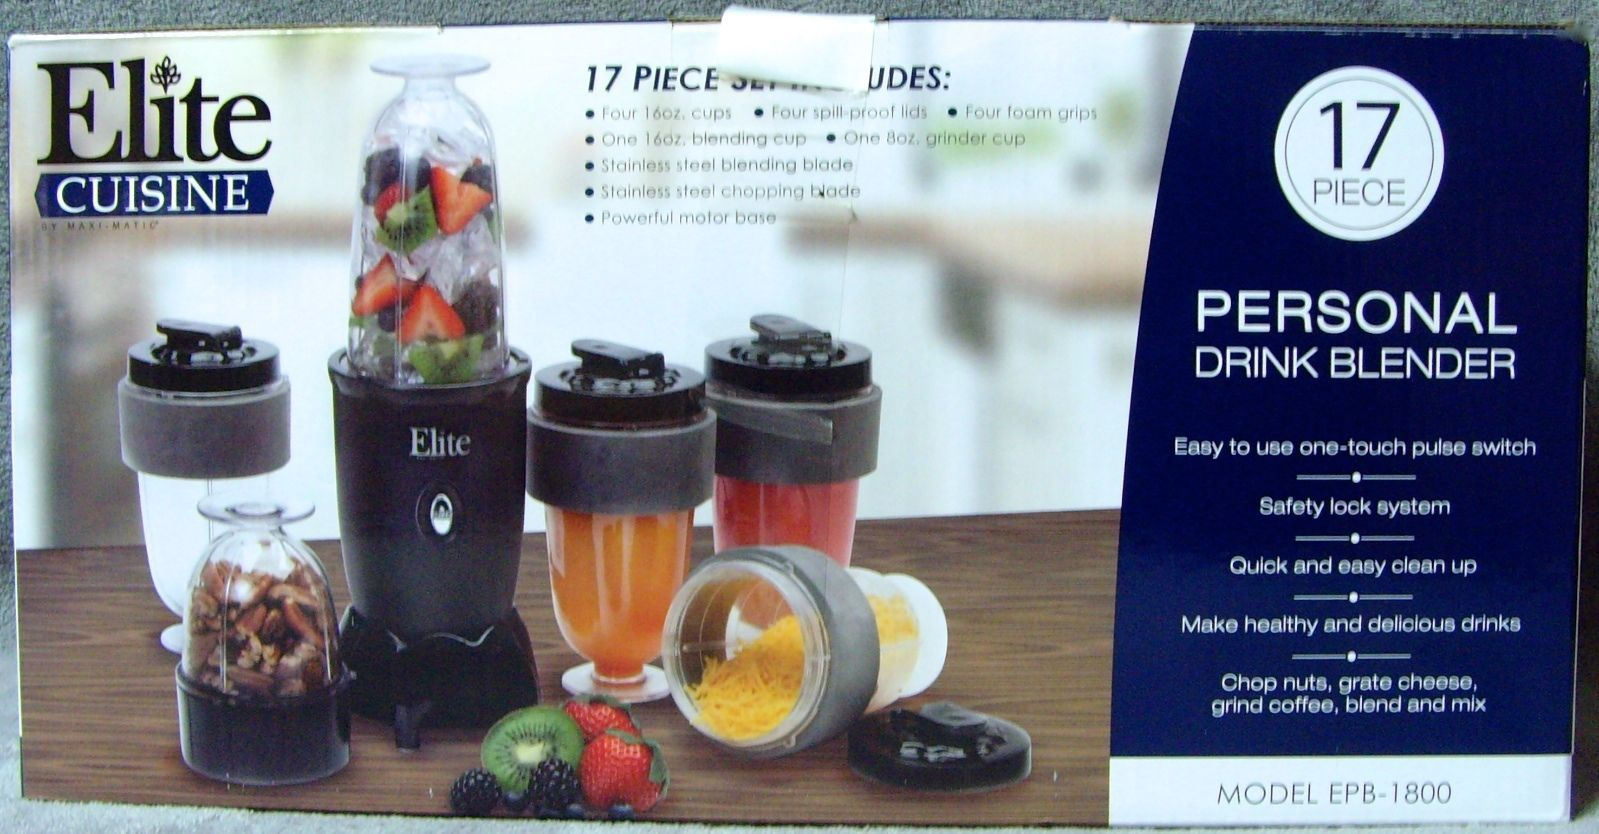 New•Maxi-Matic•Elite Cuisine•17 pc •Personal and 50 similar